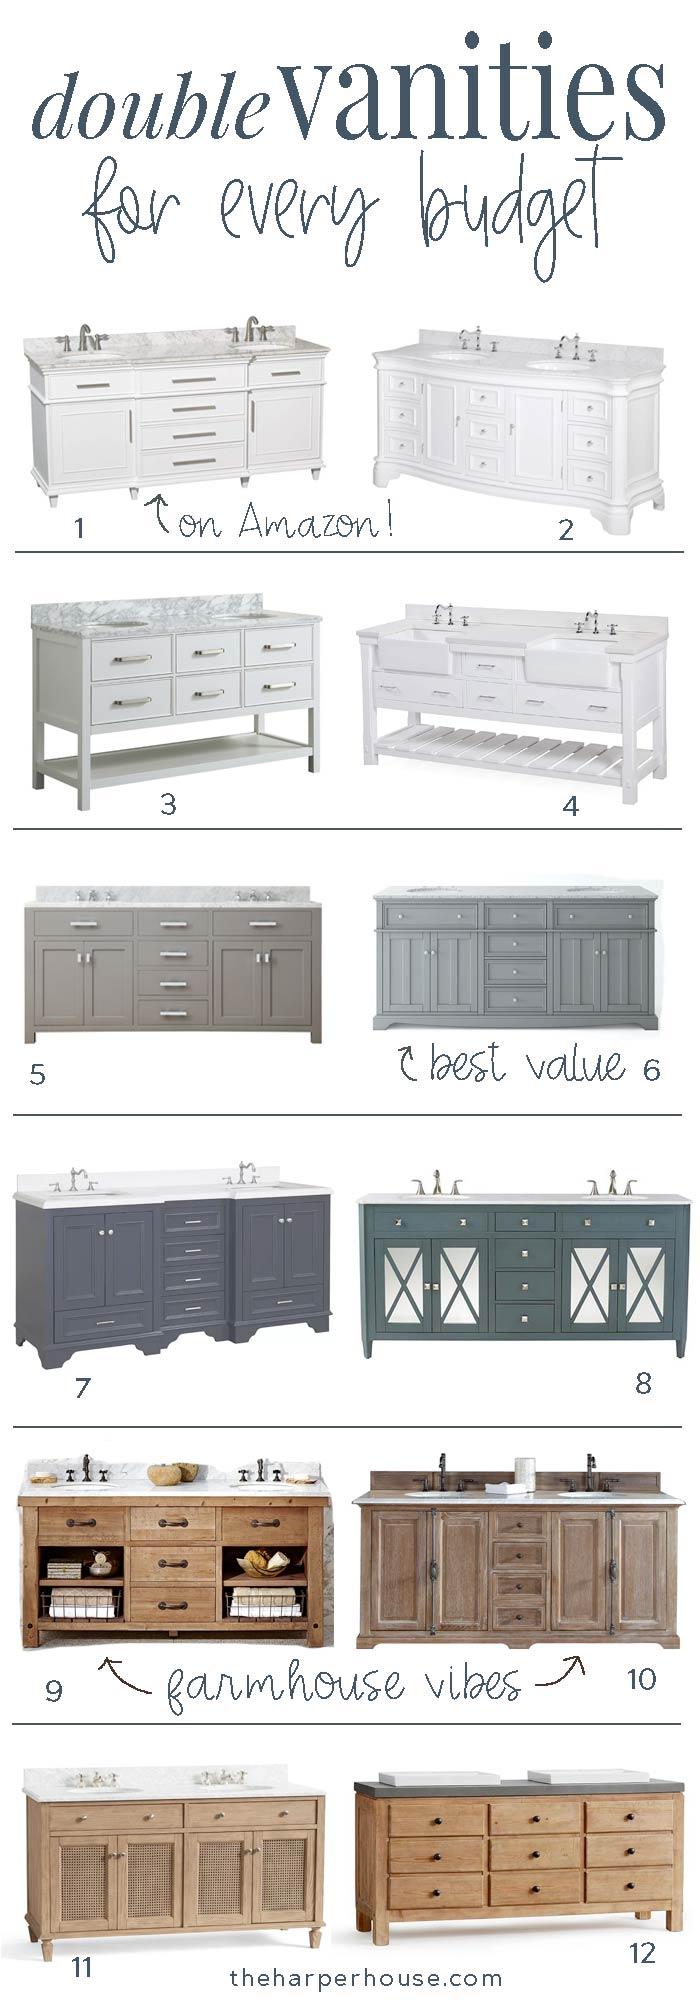 Bathroom Vanities Shopping Guide